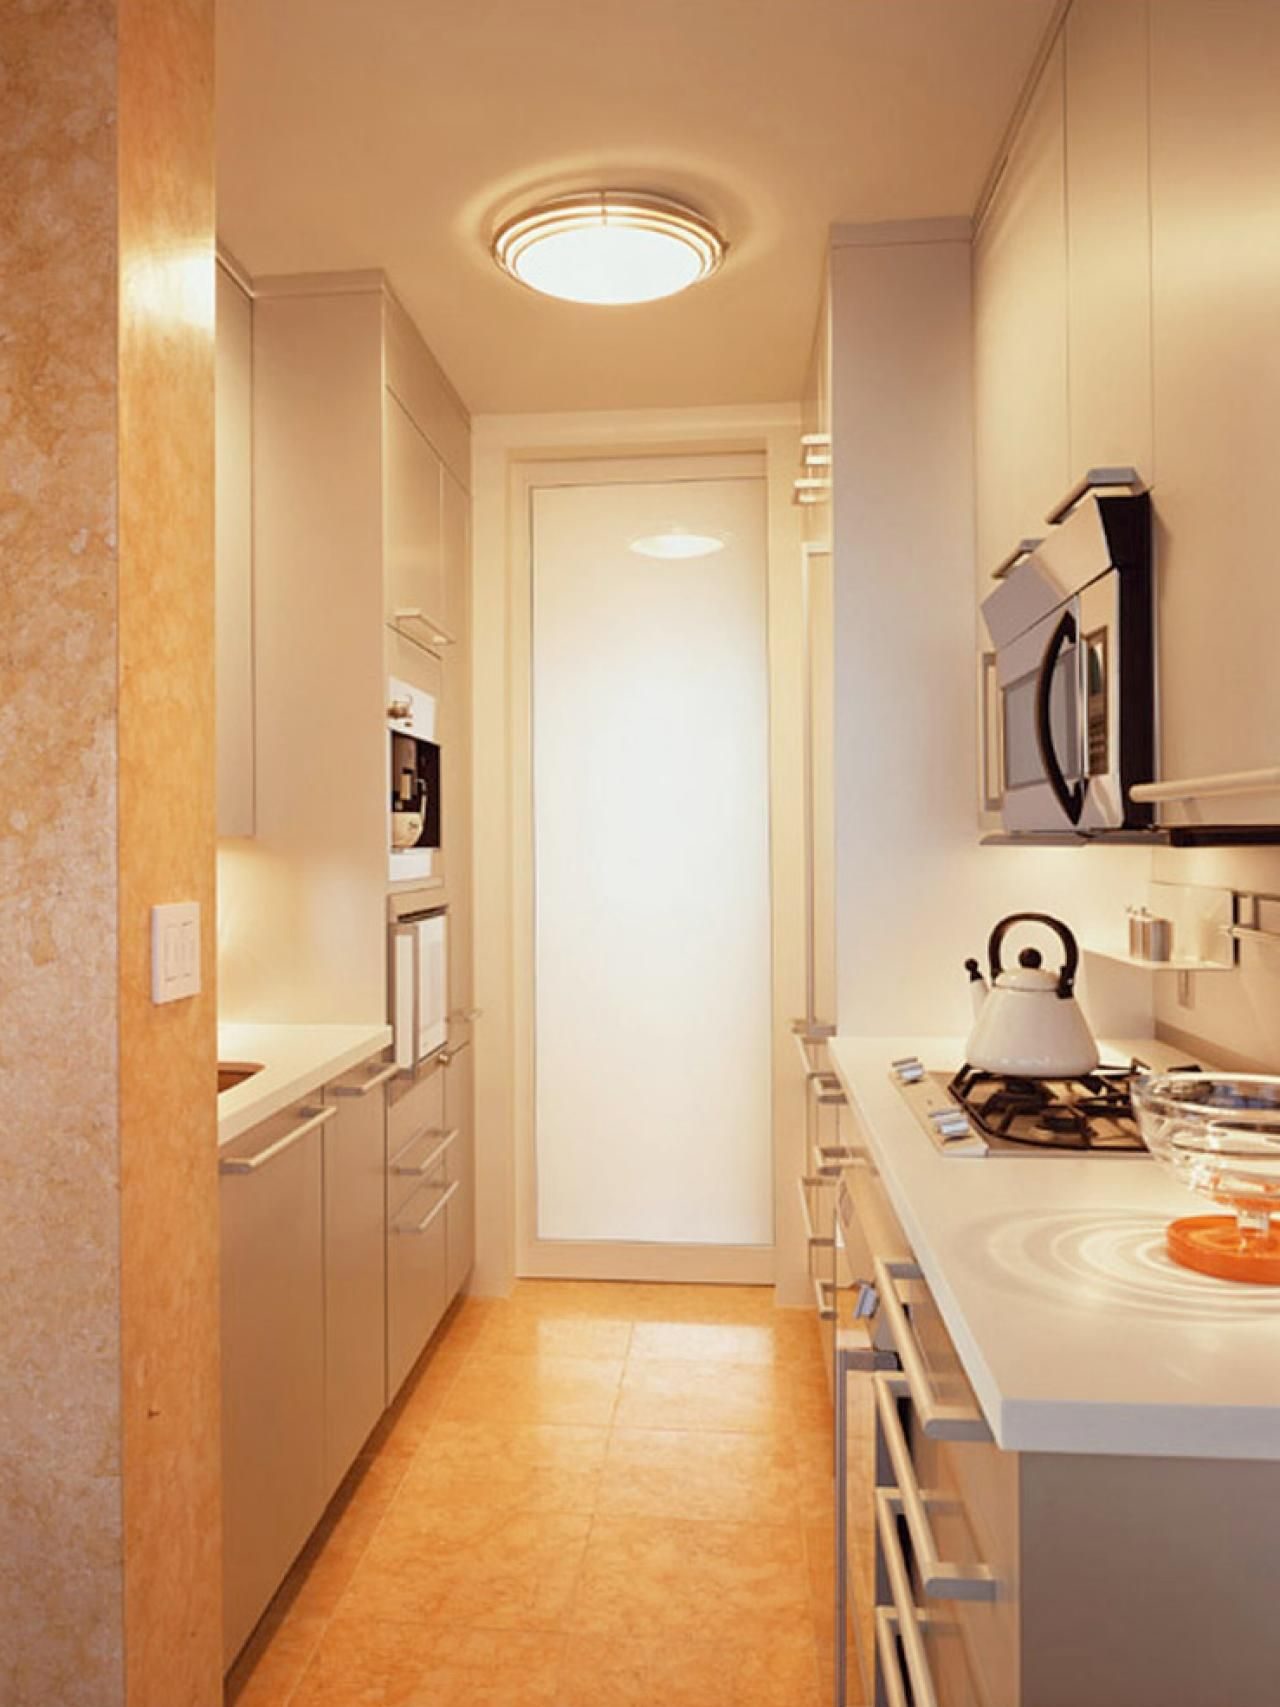 Best Small Galley Kitchen Design Pictures Ideas From Small 400 x 300